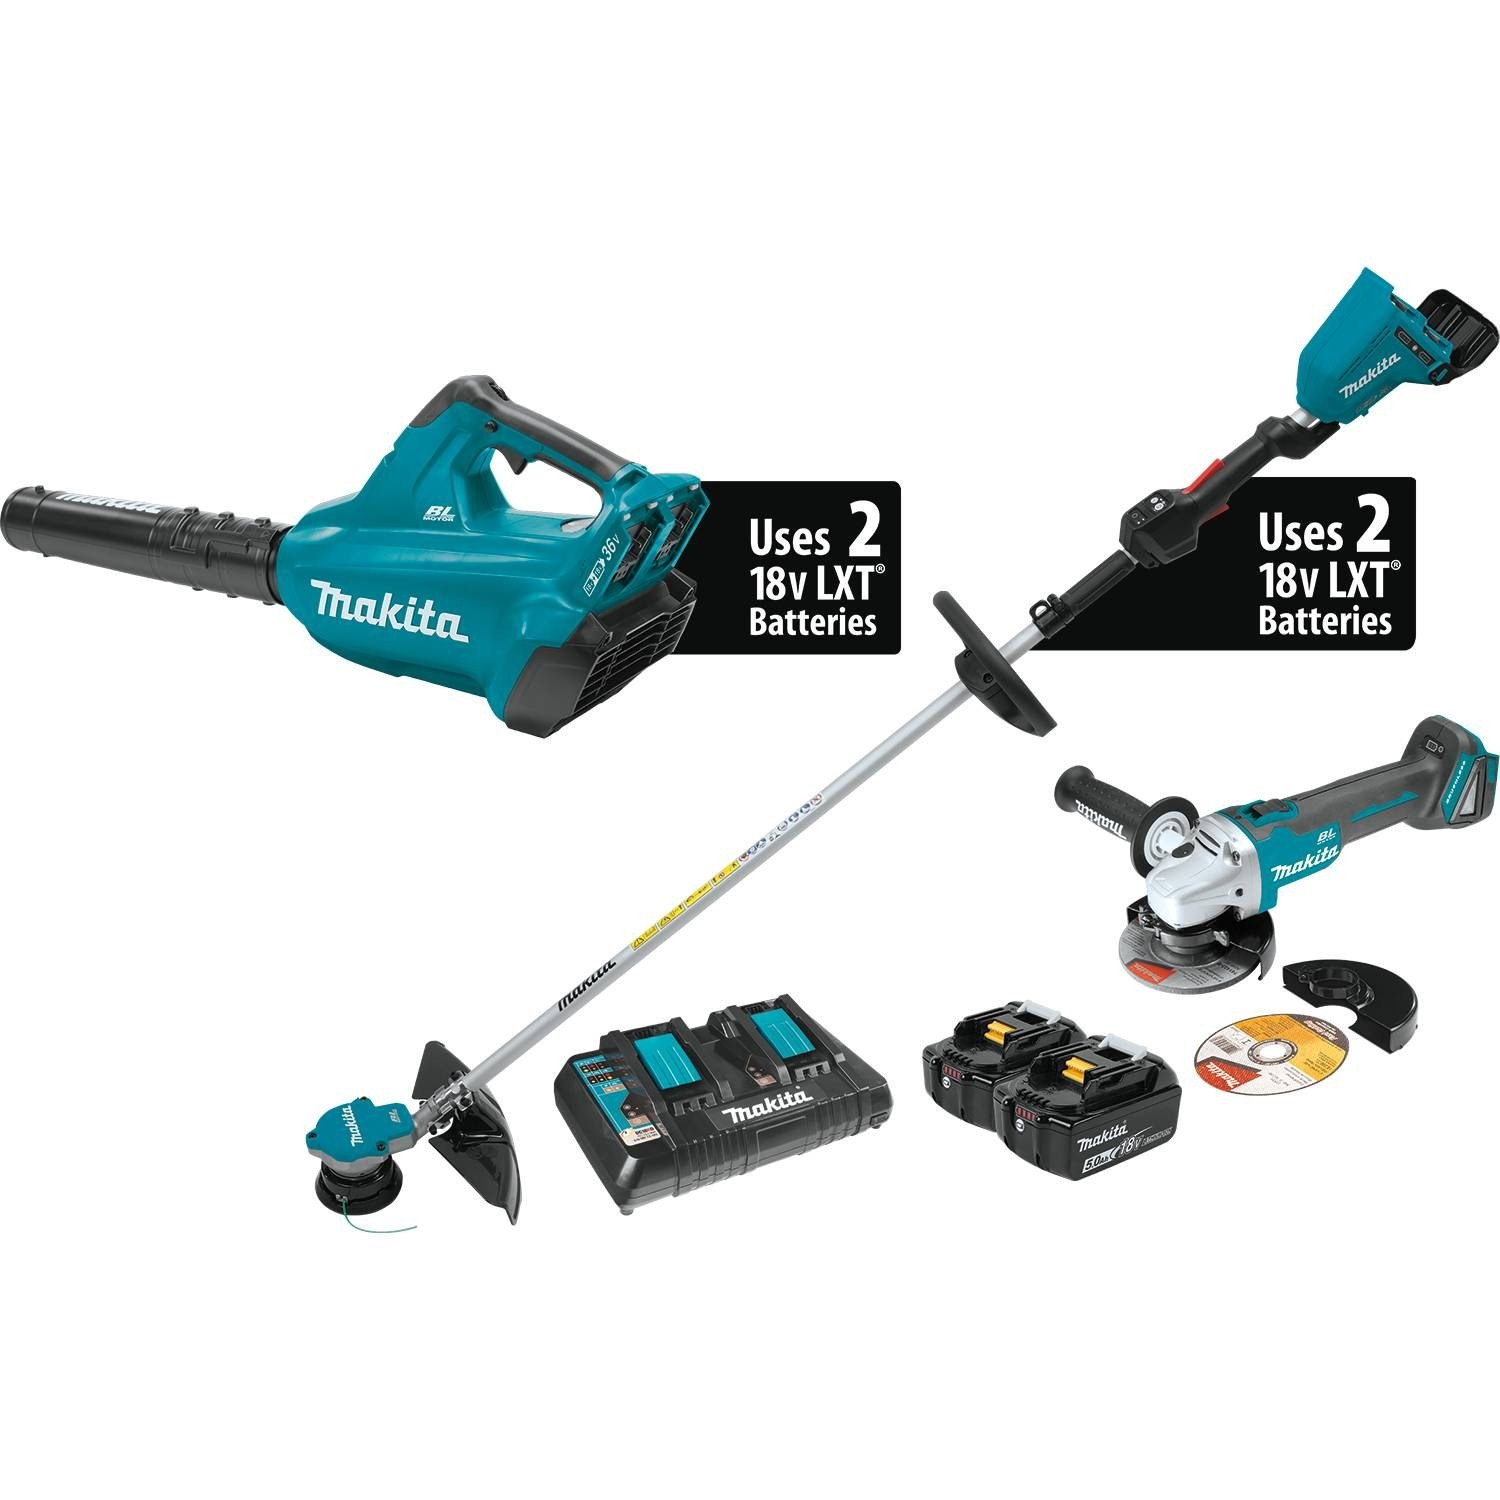 Makita XT277PTX 18V X2 36V LXT Lithium-Ion Brushless Cordless 2-Pc. Combo Kit 5.0Ah and Brushless Angle Grinder